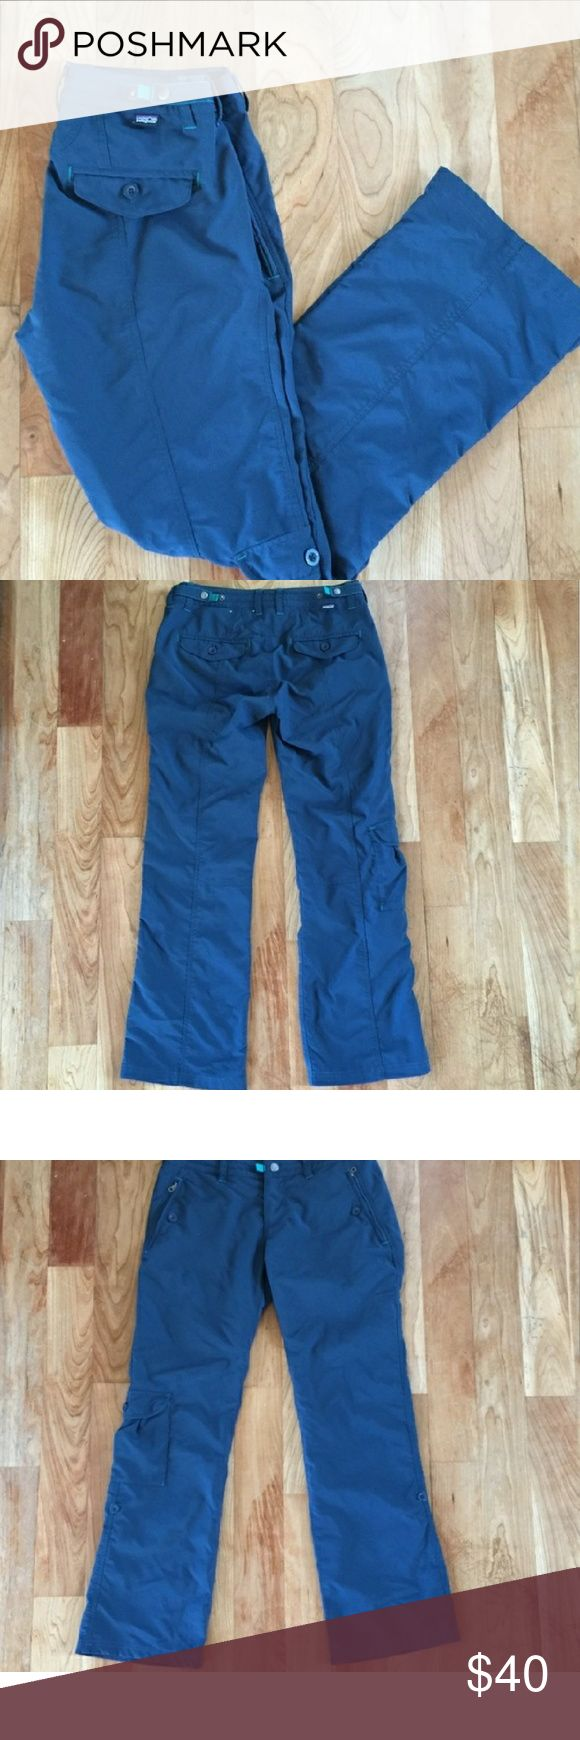 Patagonia Outdoor Pants Super awesome, breathable Patagonia pants. they great for outdoors, hiking, or whatever! They can still up into capris & have a nice pocket lb the side. Super pretty blues with teal & like new condition. They've only been worn a few times when I took them on a trip & realized they were too small. I love these pants & would Wear them all the time if I wasn't a size 4 now. Patagonia Pants Straight Leg